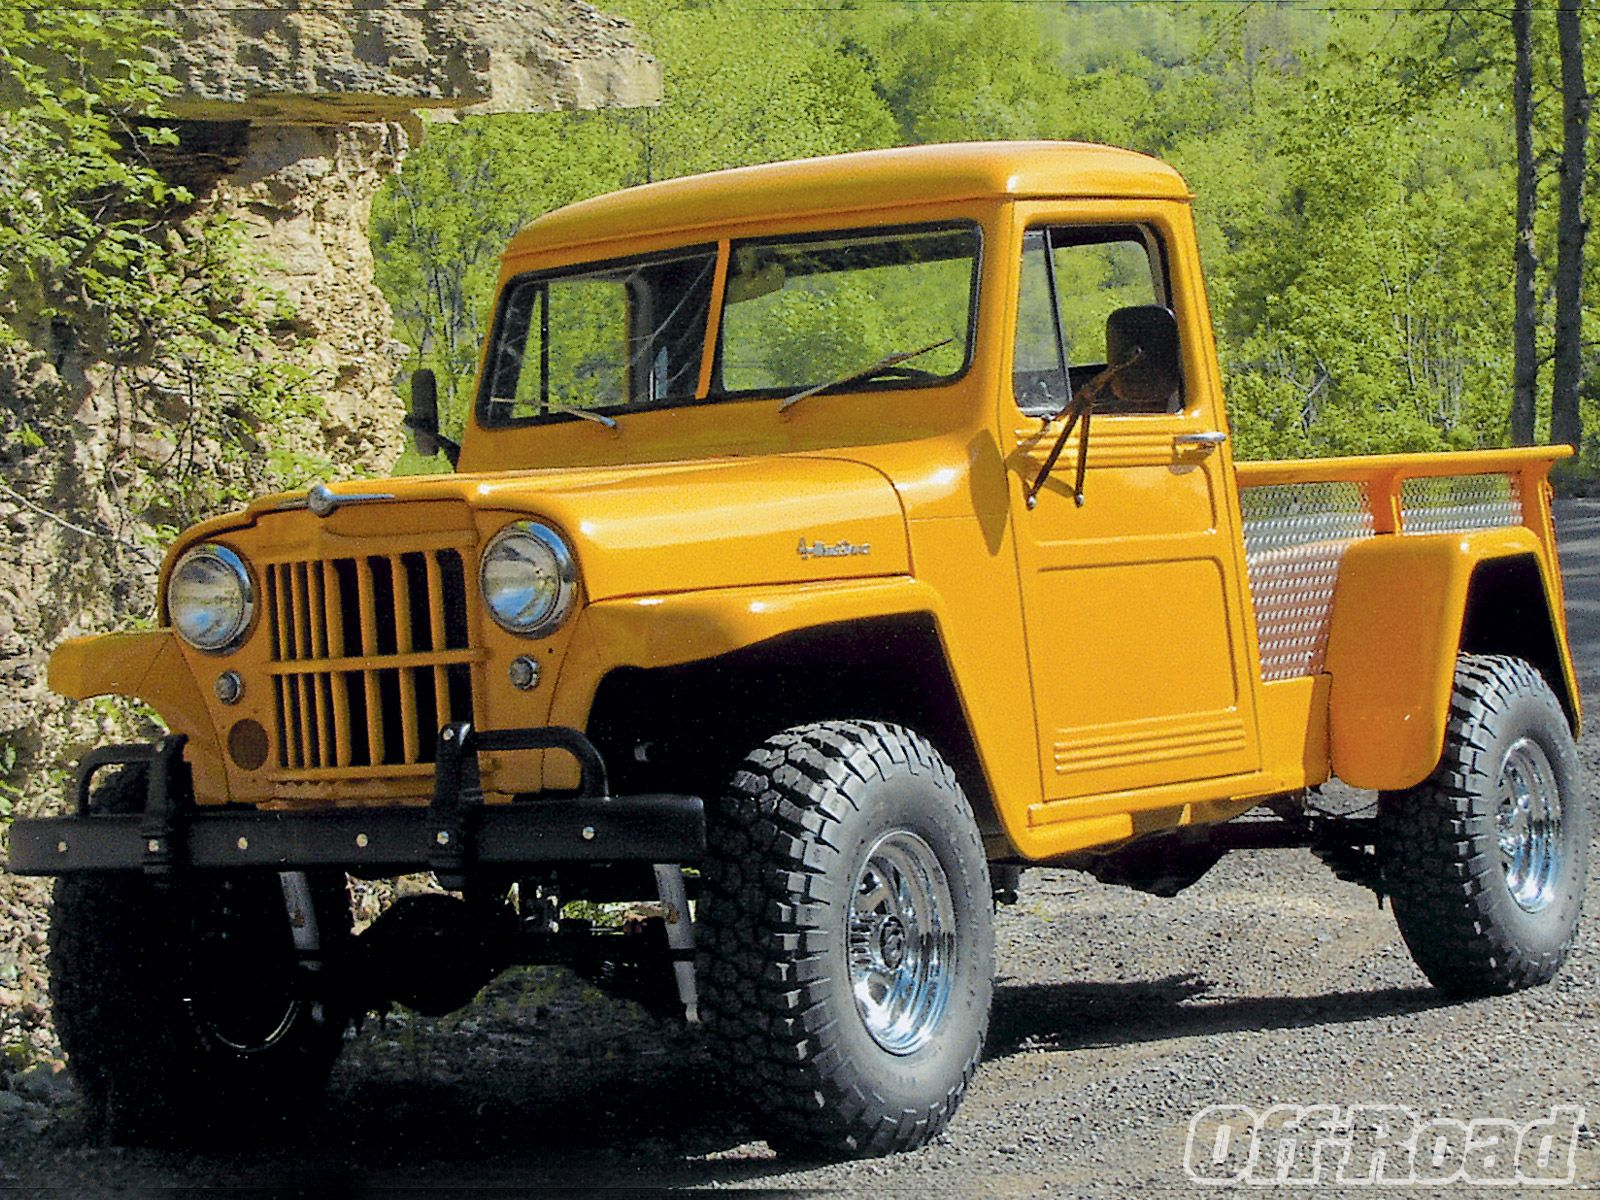 Willys Pickup の画像検索結果 Willys Willys Jeep Jeep Pickup